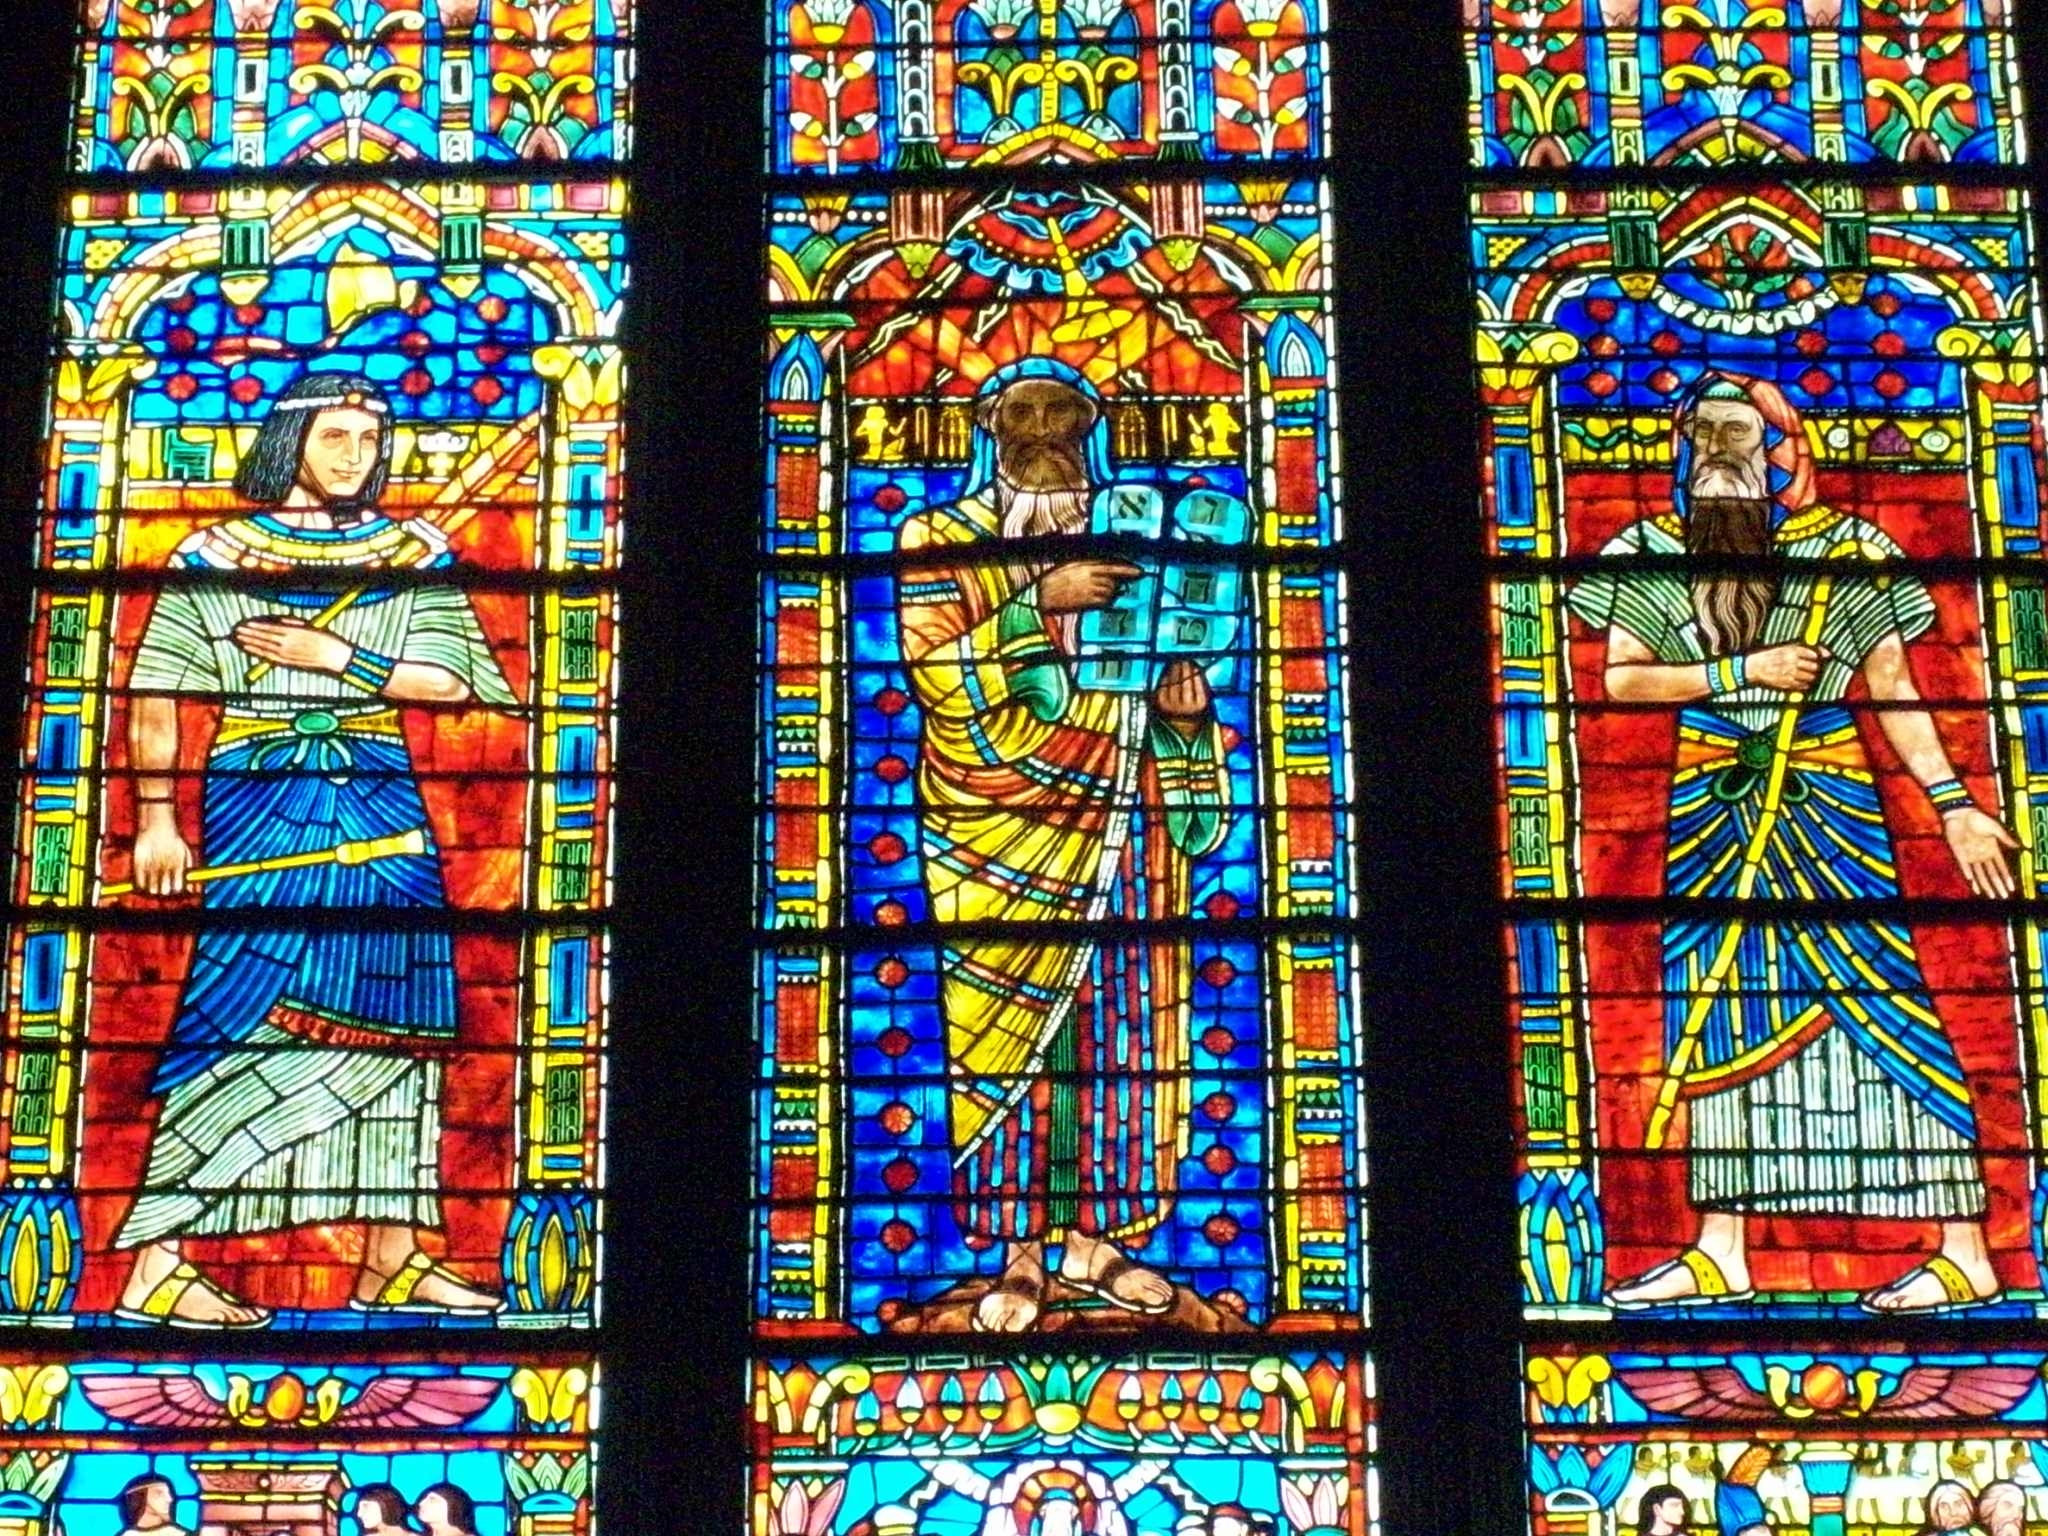 Photograph taken at the Washington National Cathedral of the Moses window by Lawrence Saint This window depicts the three stages of the life of Moses, each of them being 40 years long. The first 40 years is depicted in the left panel, when Moses is a prince in Egypt. The next 40 years is depicted in the right panel, which is Moses before Pharaoh. The last 40 years depicts Moses with the 10 Commandments, representative of his time with the Israelites in the wilderness as a lawgiver.